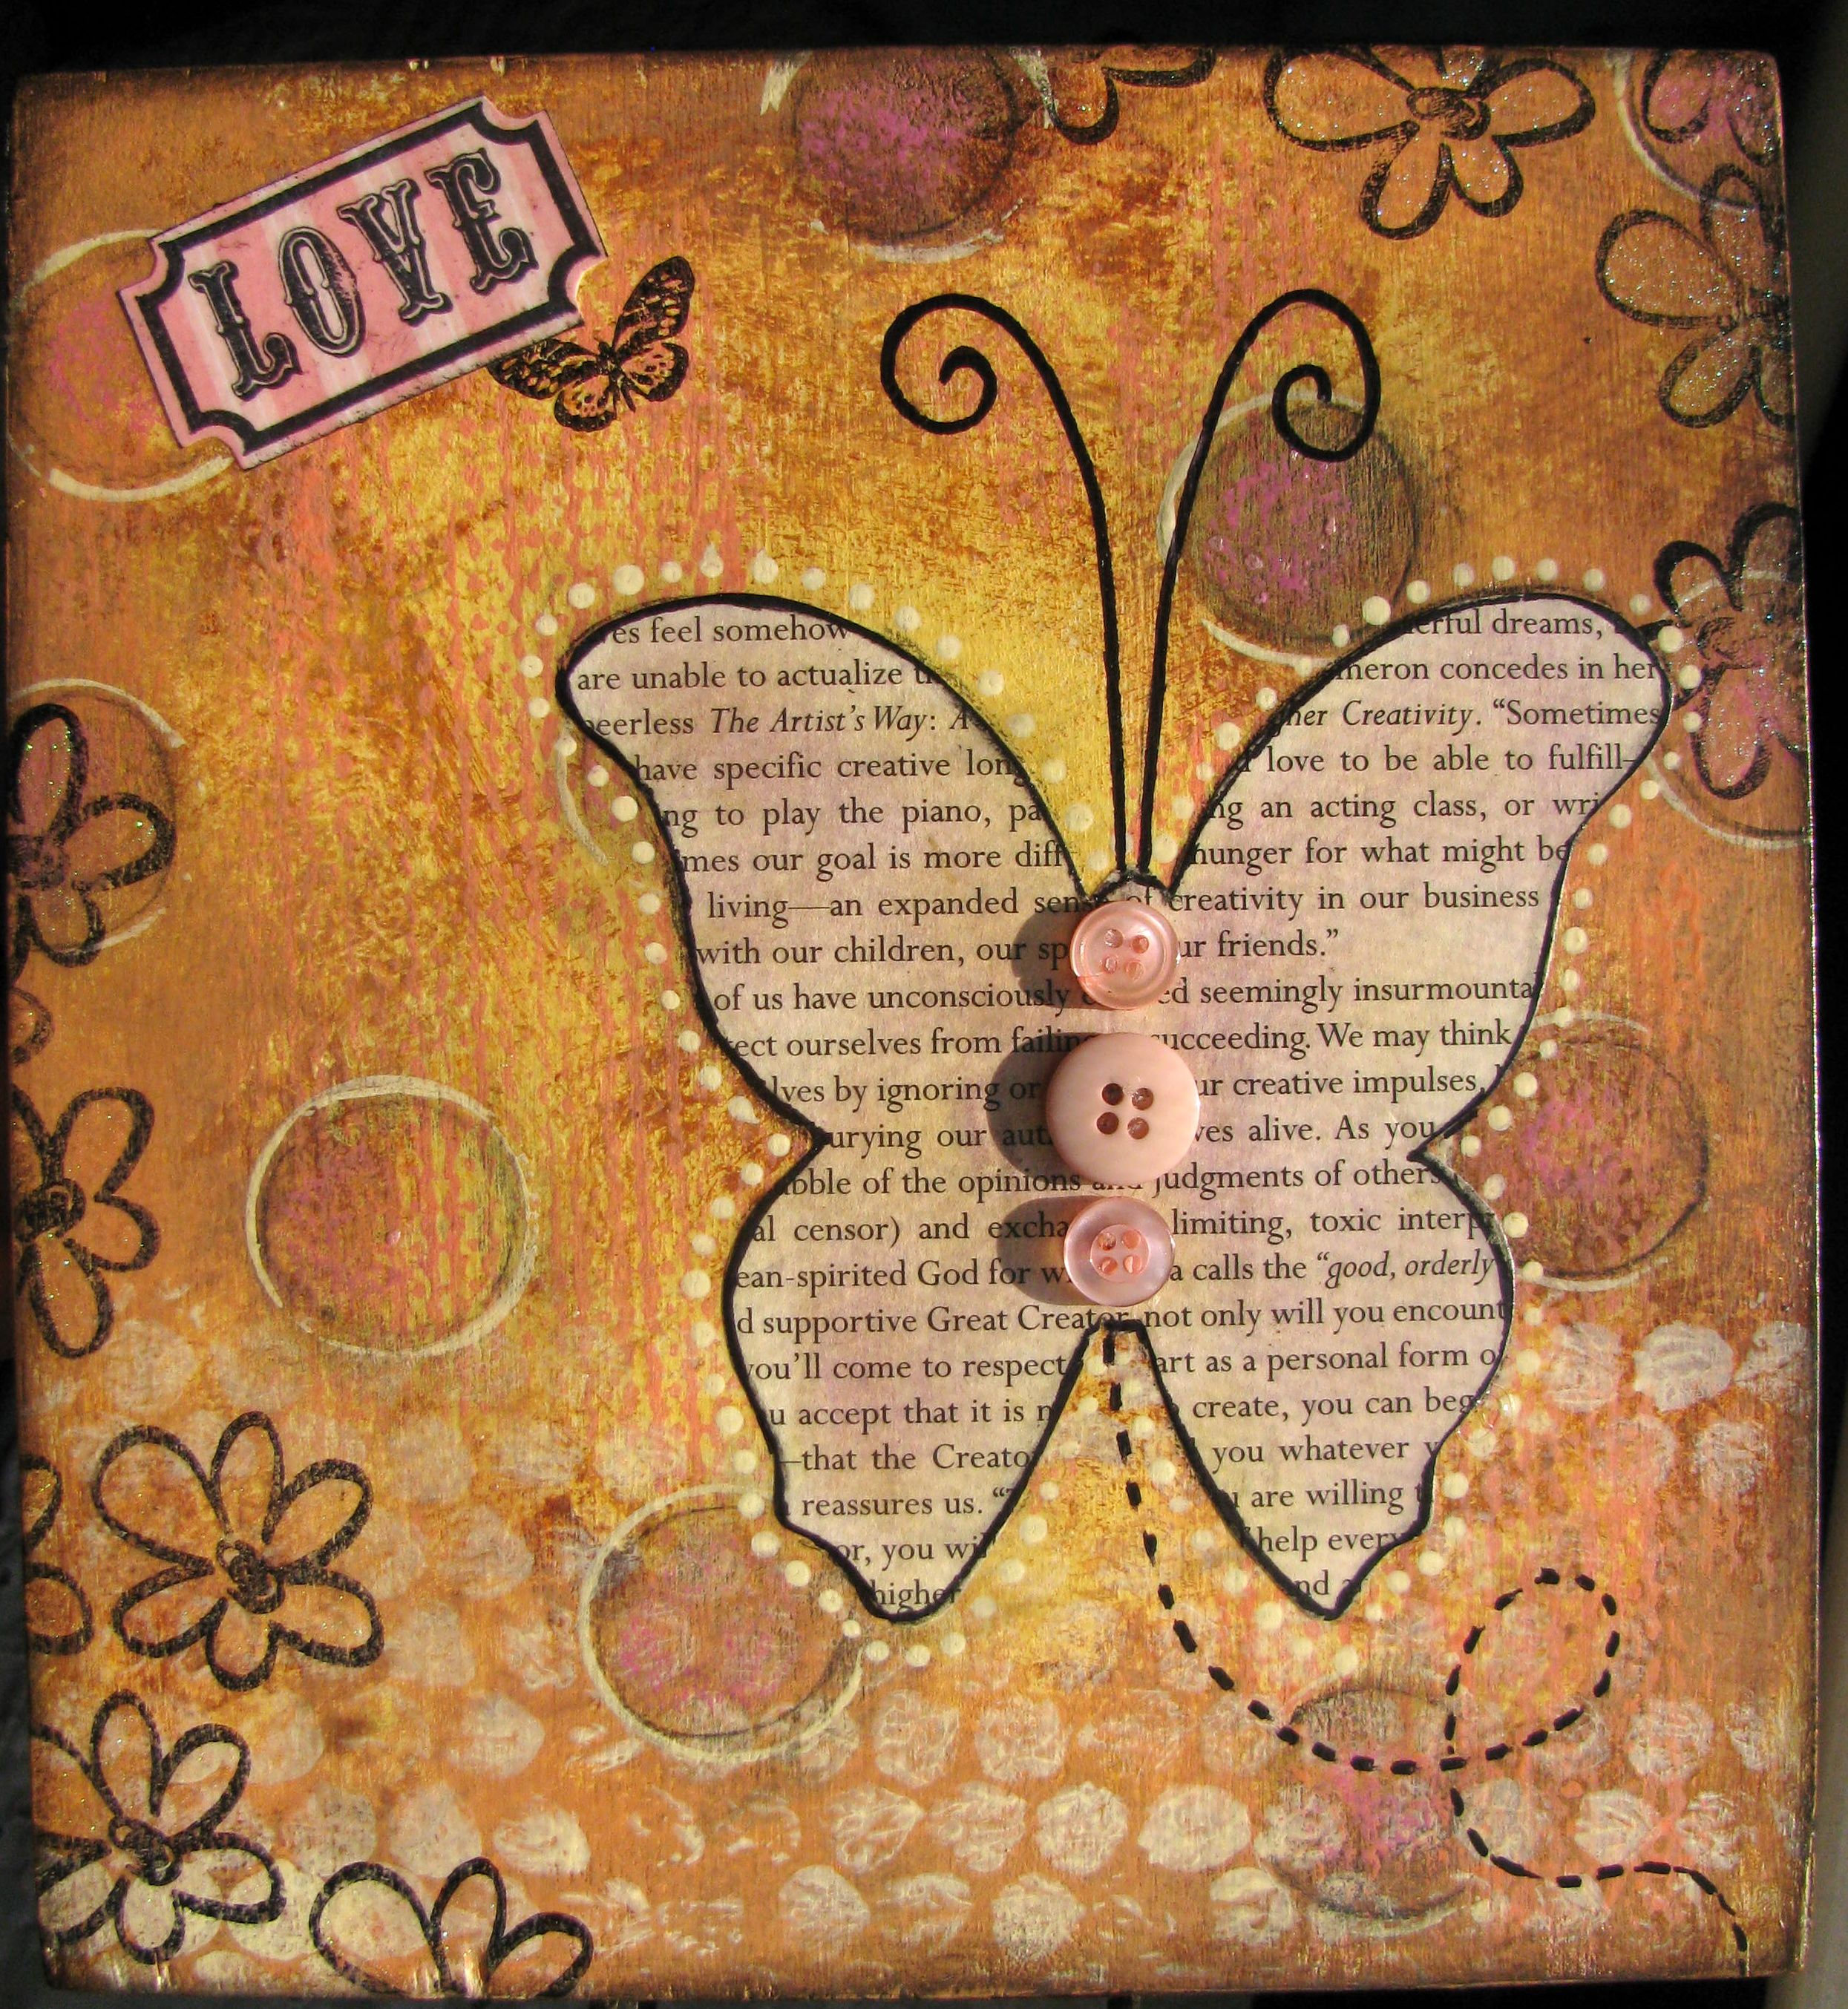 Love Mixed Media Collage